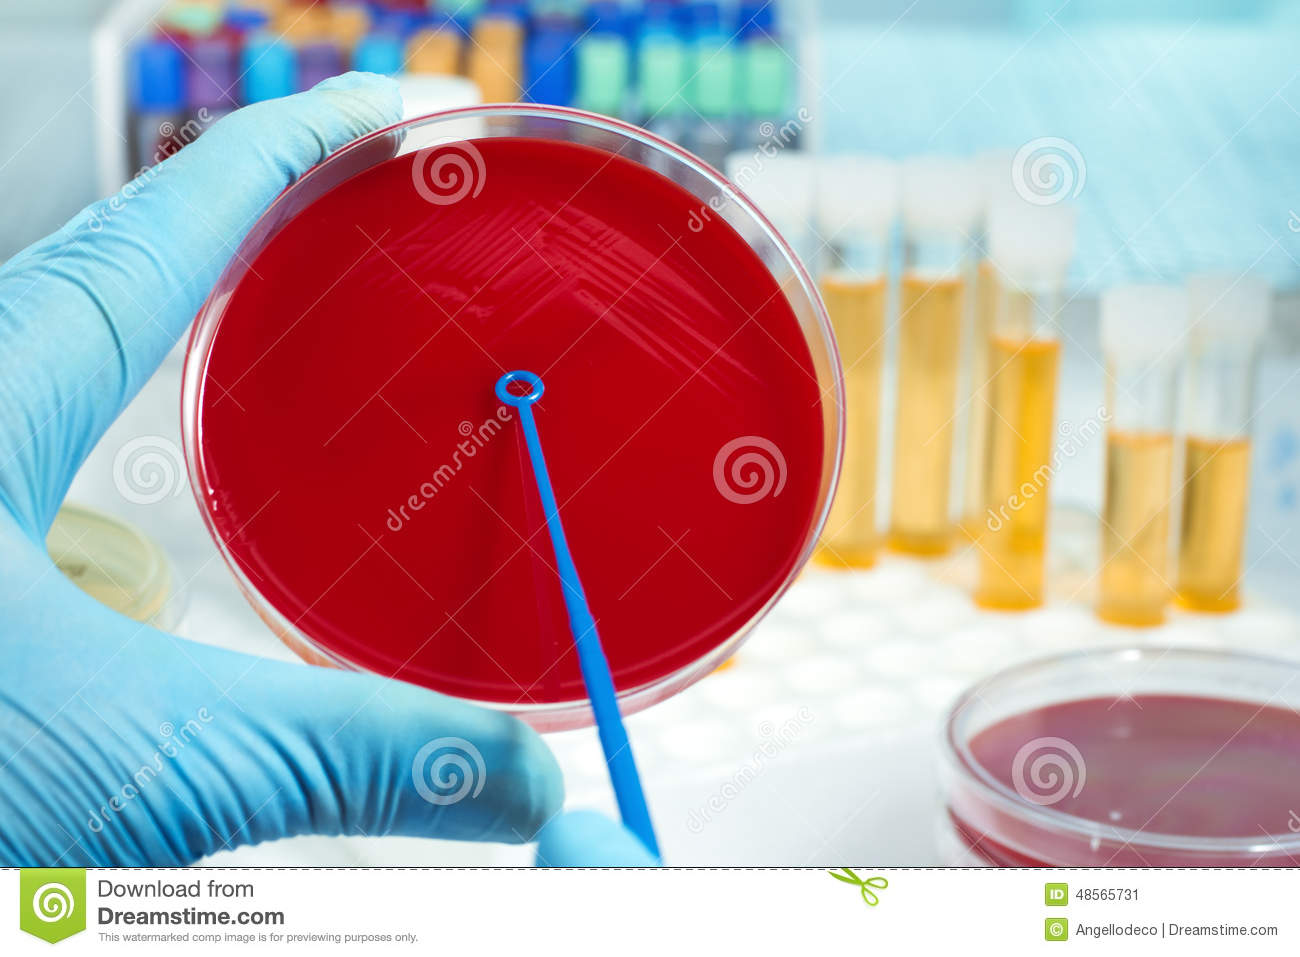 Lab Technician Inoculating Petri Dish Stock Image - Image of ... for Inoculation Microbiology  575lpg